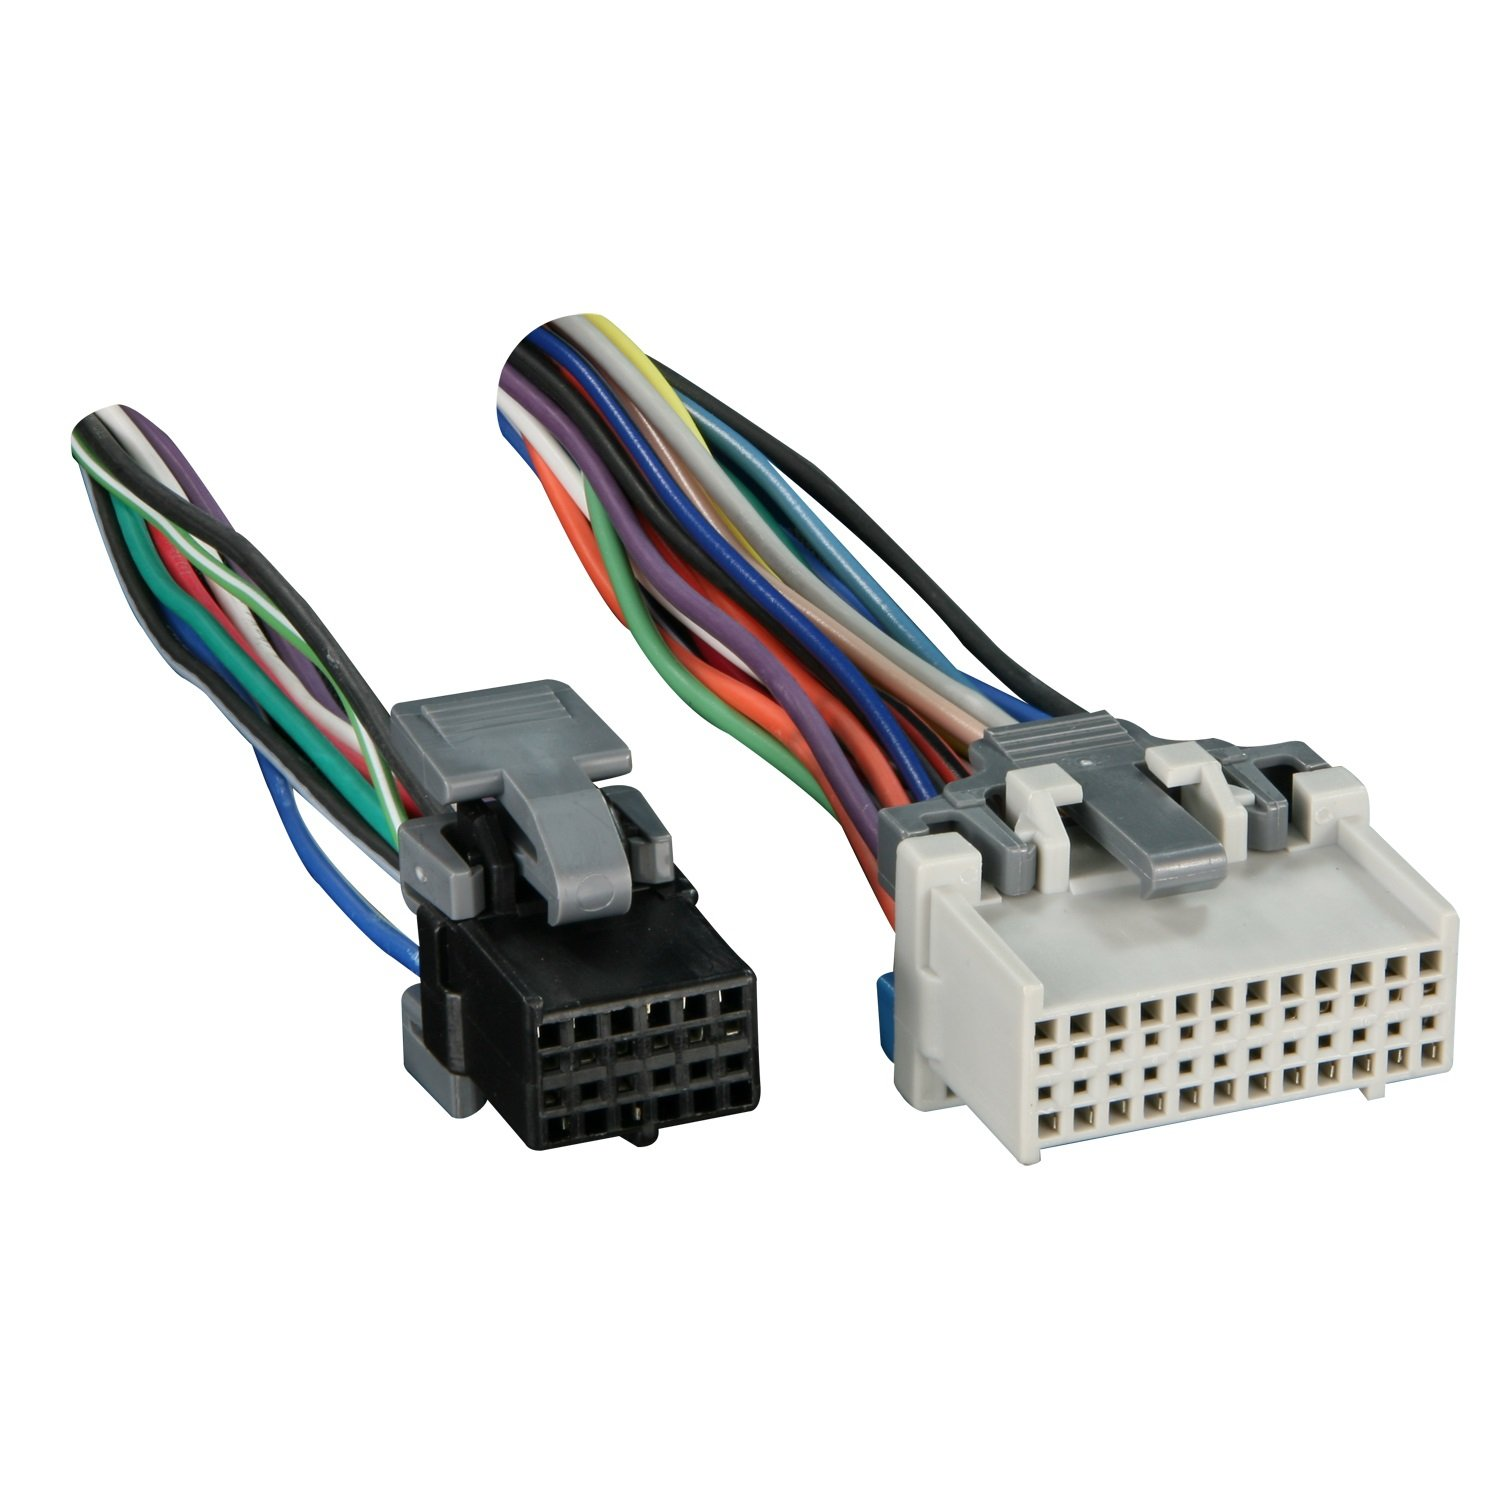 711log4bdML._SL1500_ amazon com metra turbowires 71 2003 1 wiring harness car electronics GM Wiring Color Codes at gsmportal.co